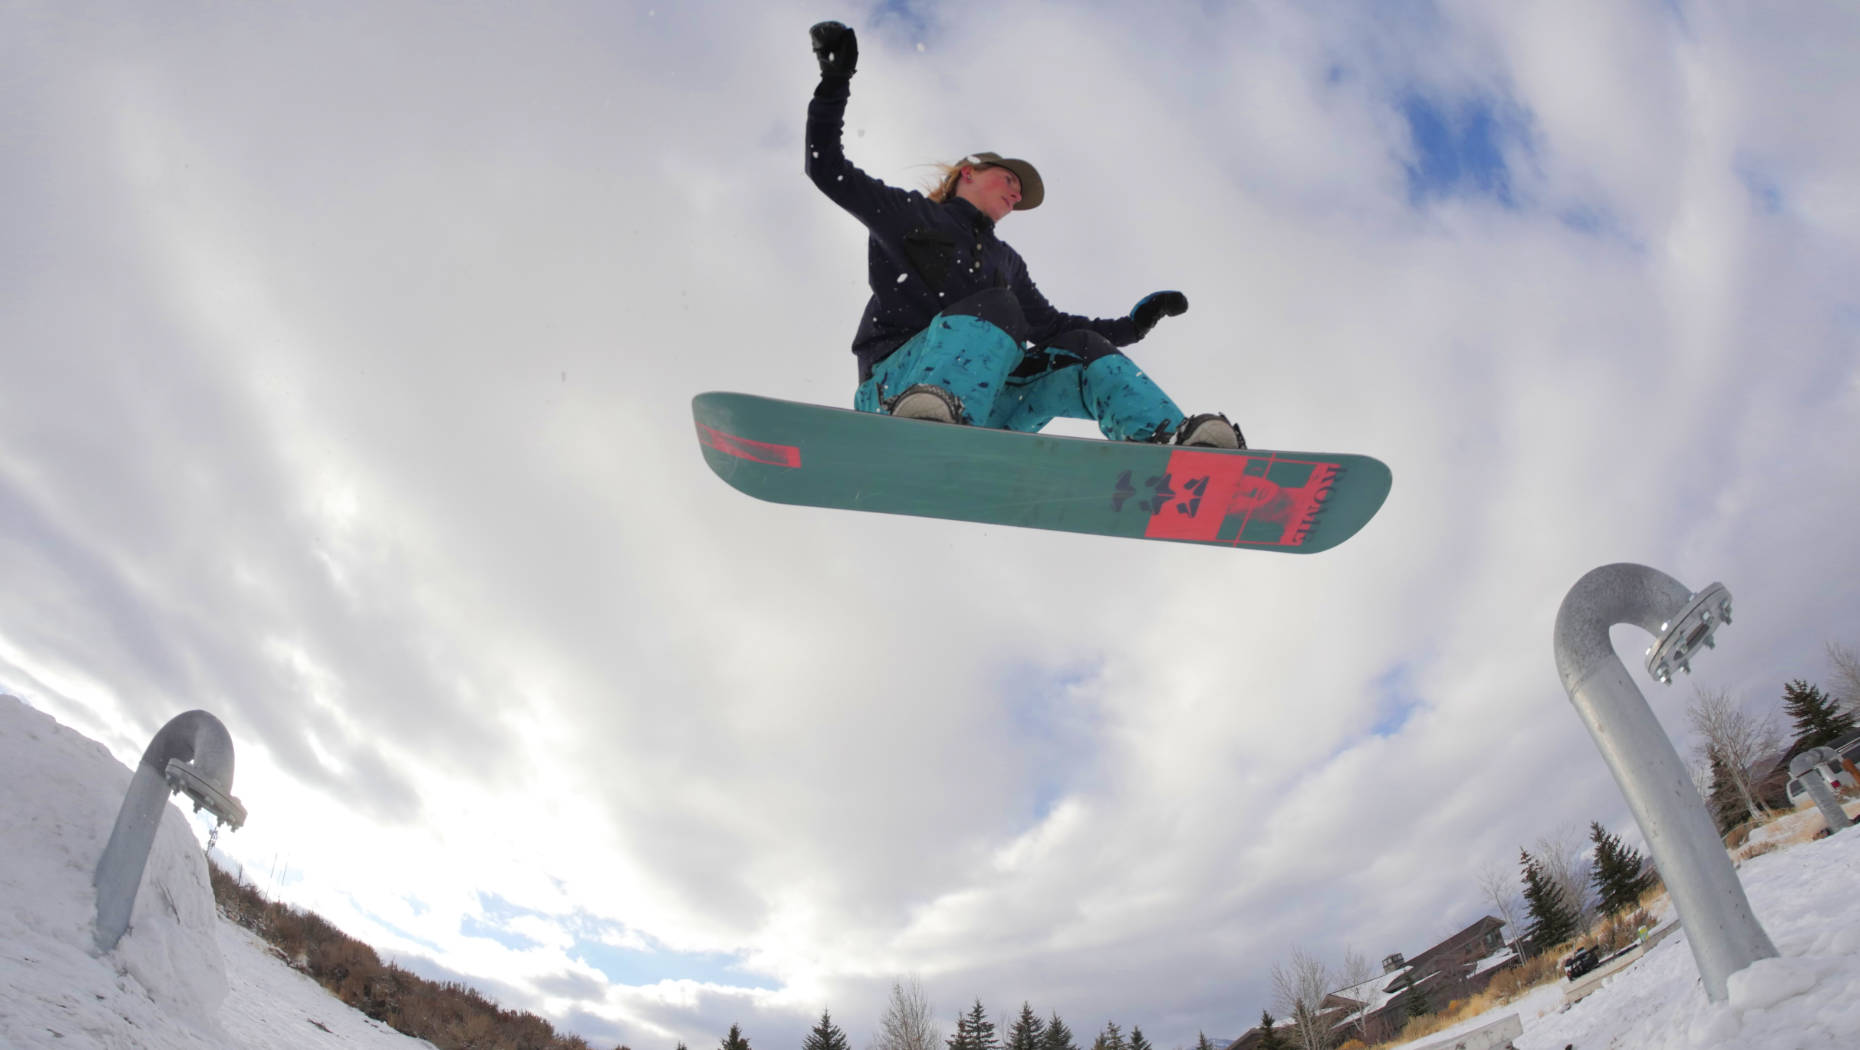 Madison Blackley on her rome snowboard